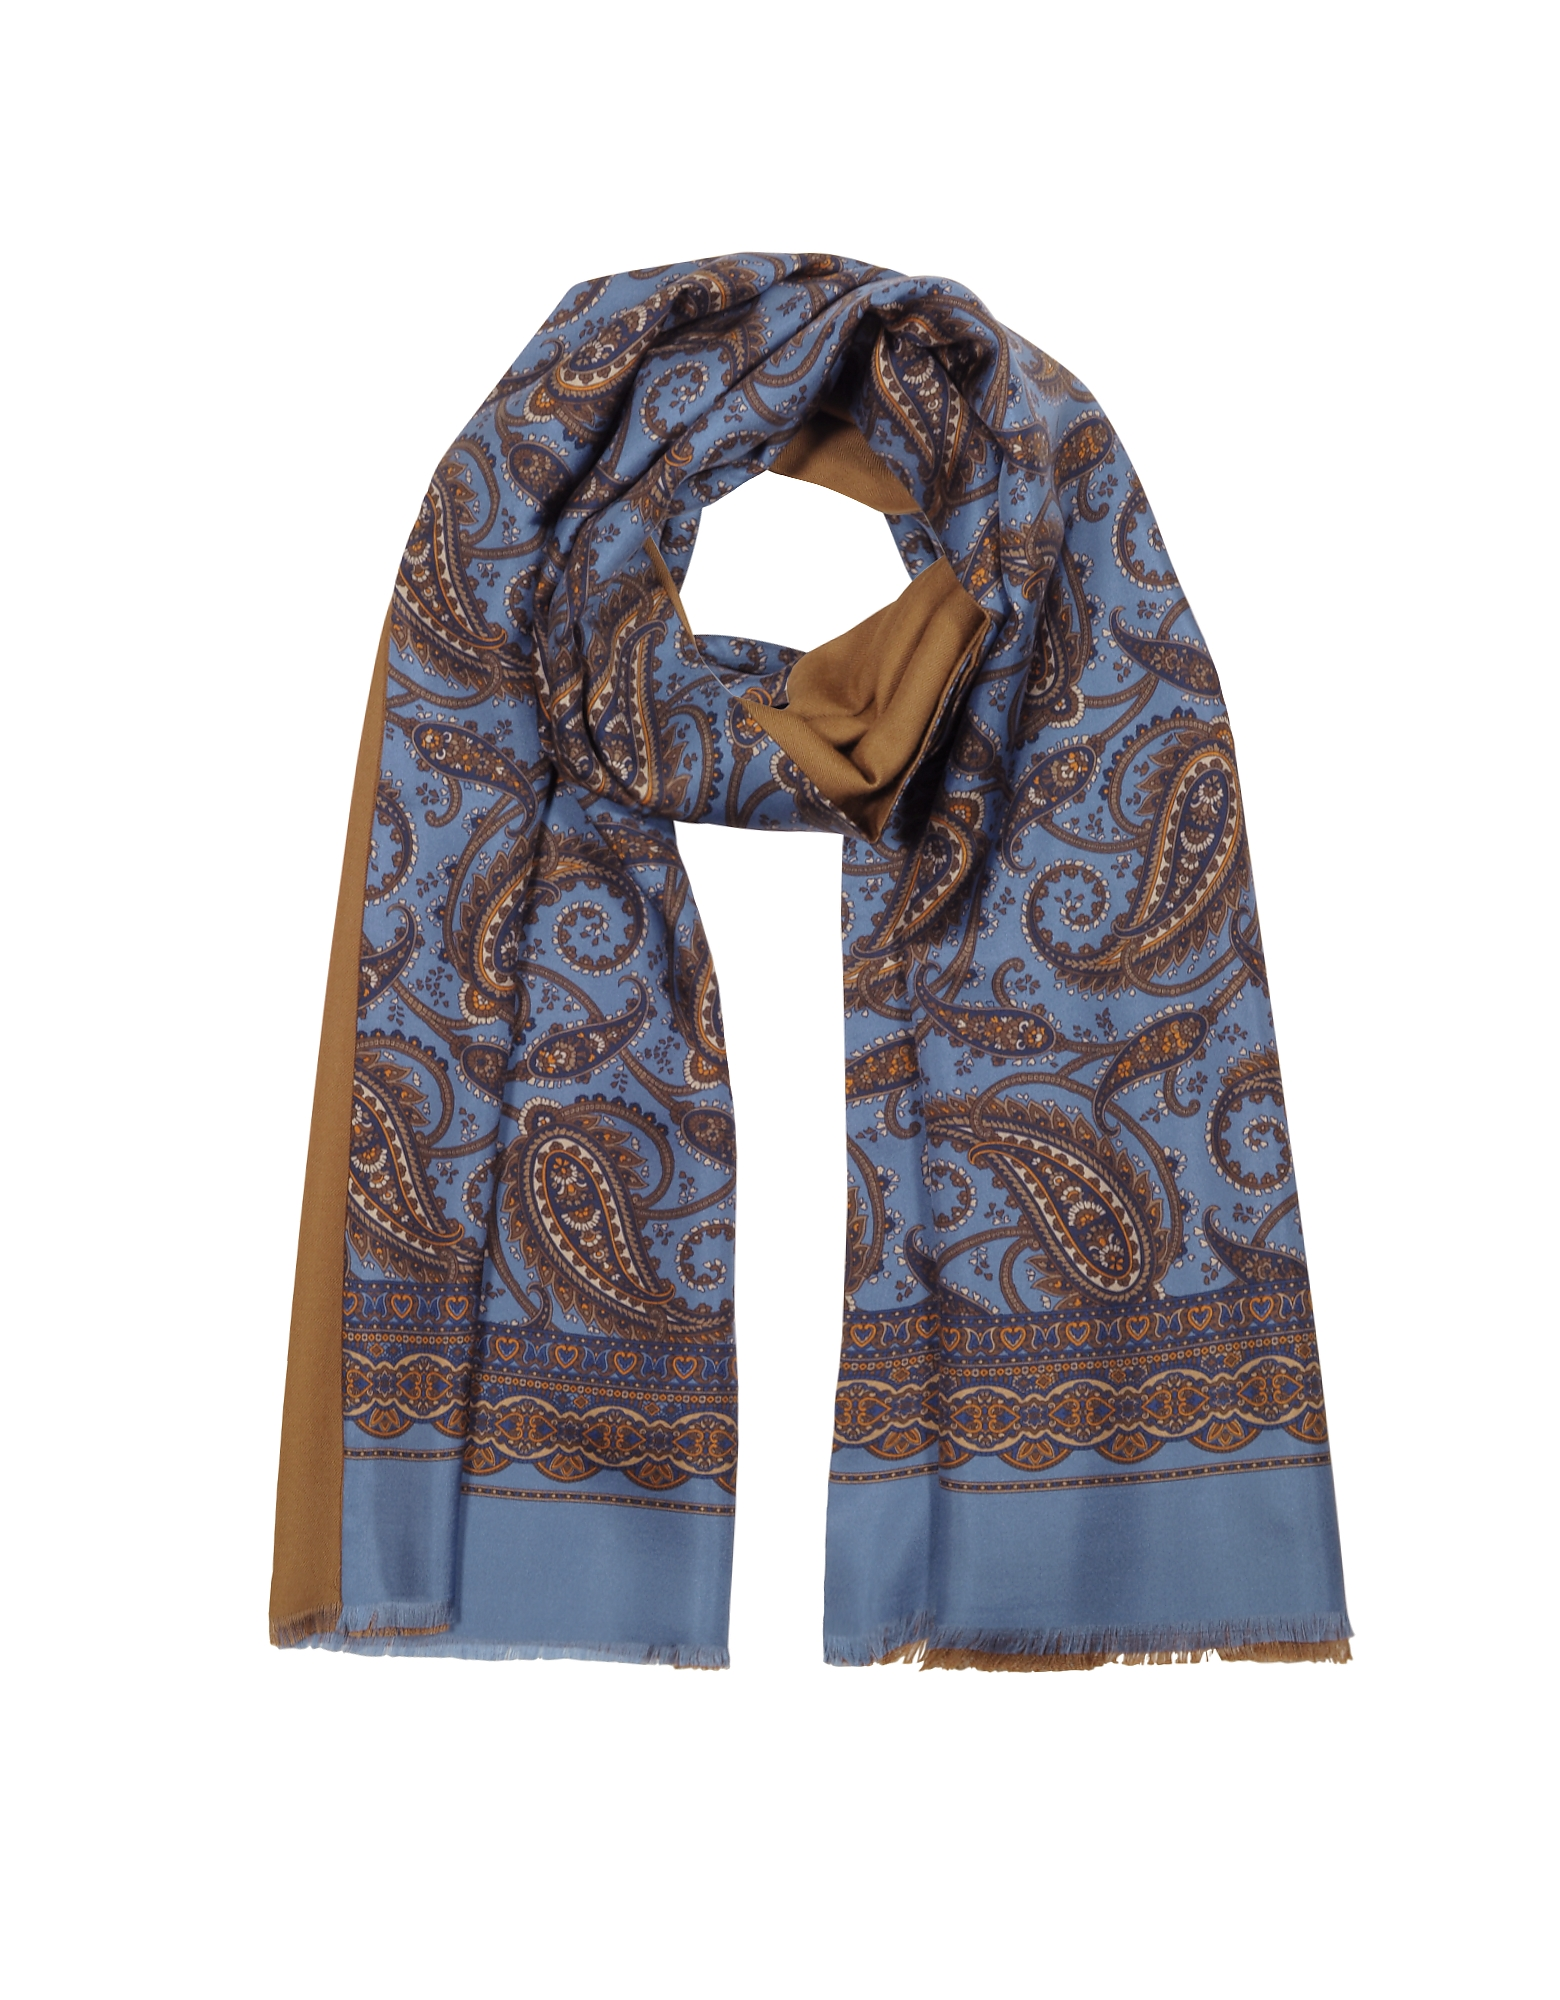 Forzieri Men's Scarves, Modal & Silk Oversized Paisley Print Men's Fringed Scarf